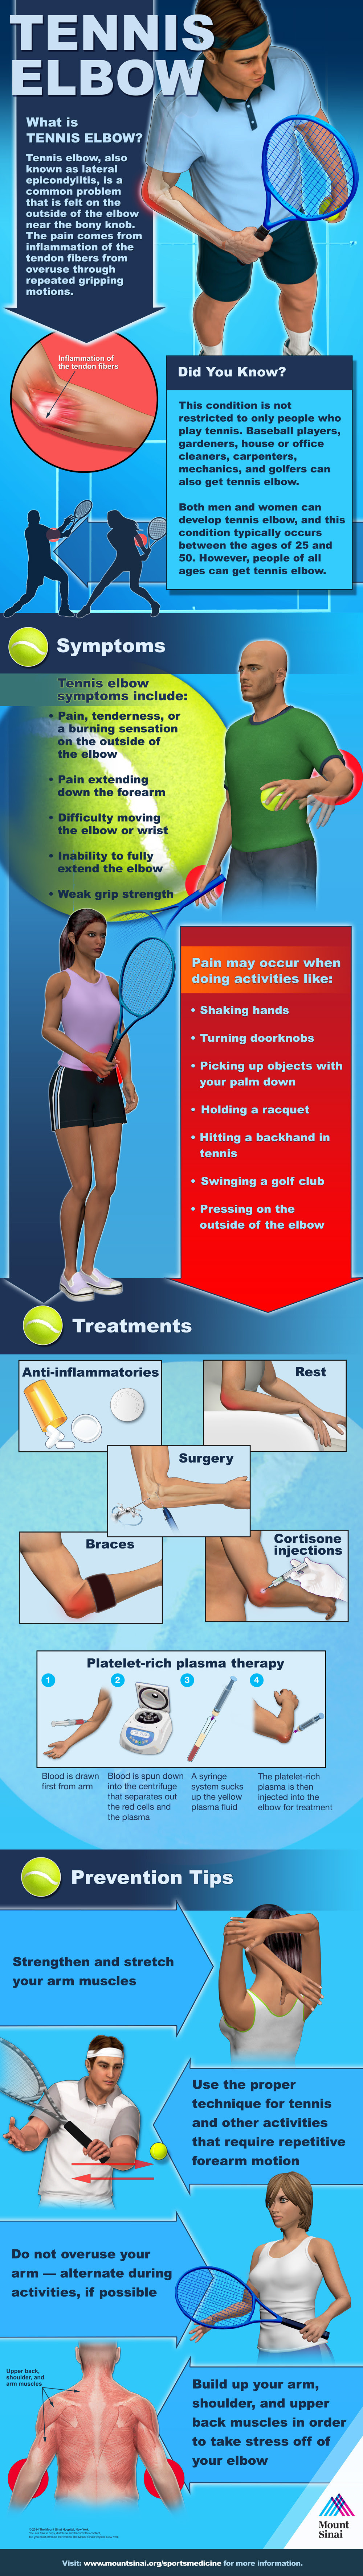 Infographic: What is Tennis Elbow